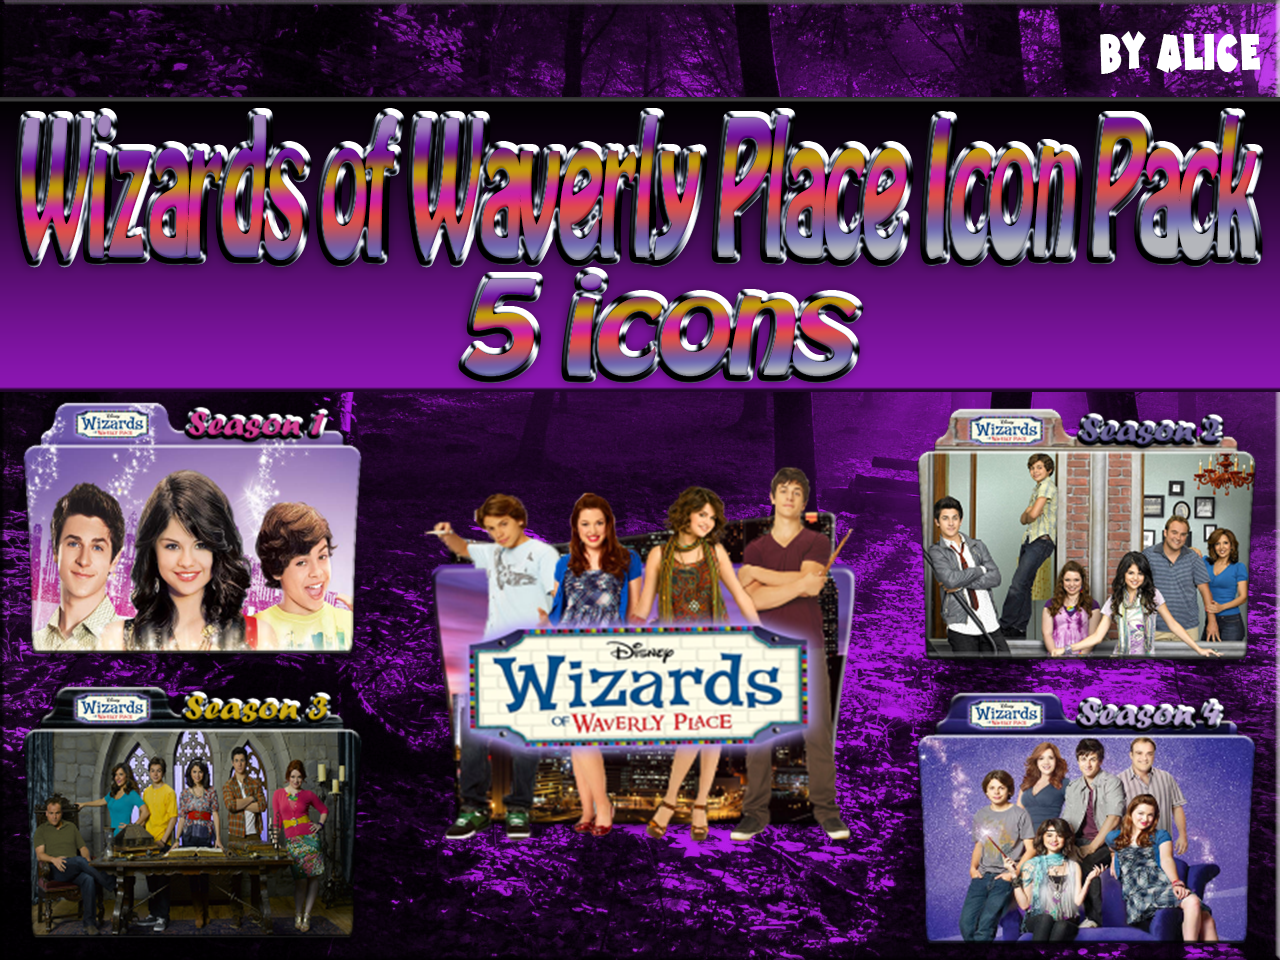 wizards of waverly place folder icon pack by alicegirl77 on deviantart